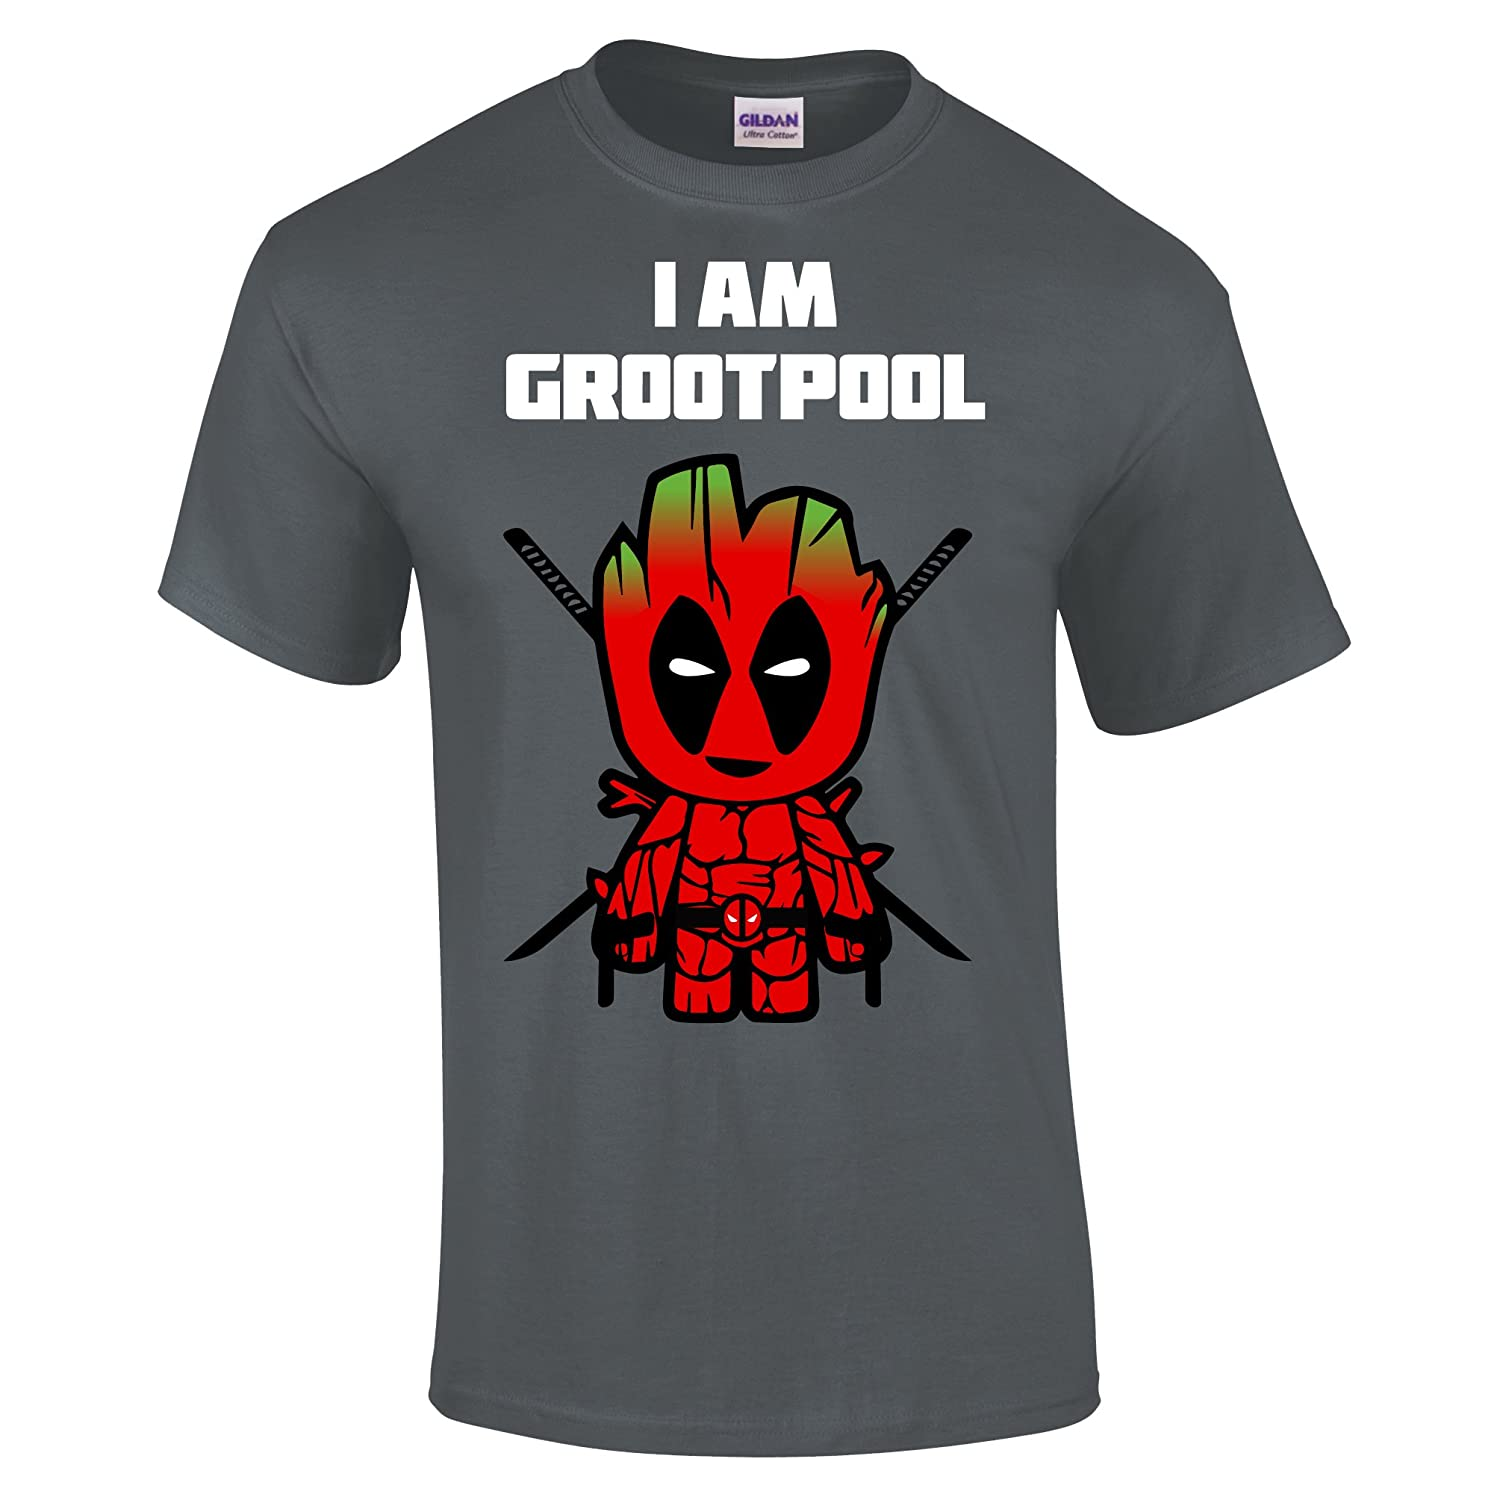 96d56fd8 Funky Gifts I Am Groot Pool Adults T-Shirt Grey: Amazon.co.uk: Clothing